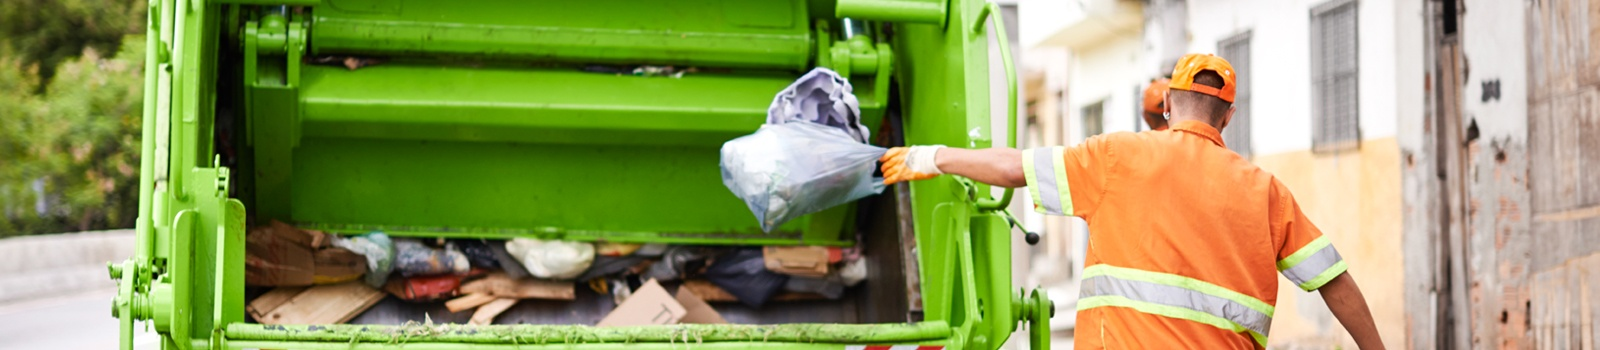 Waste Worker Loading Garbage Truck